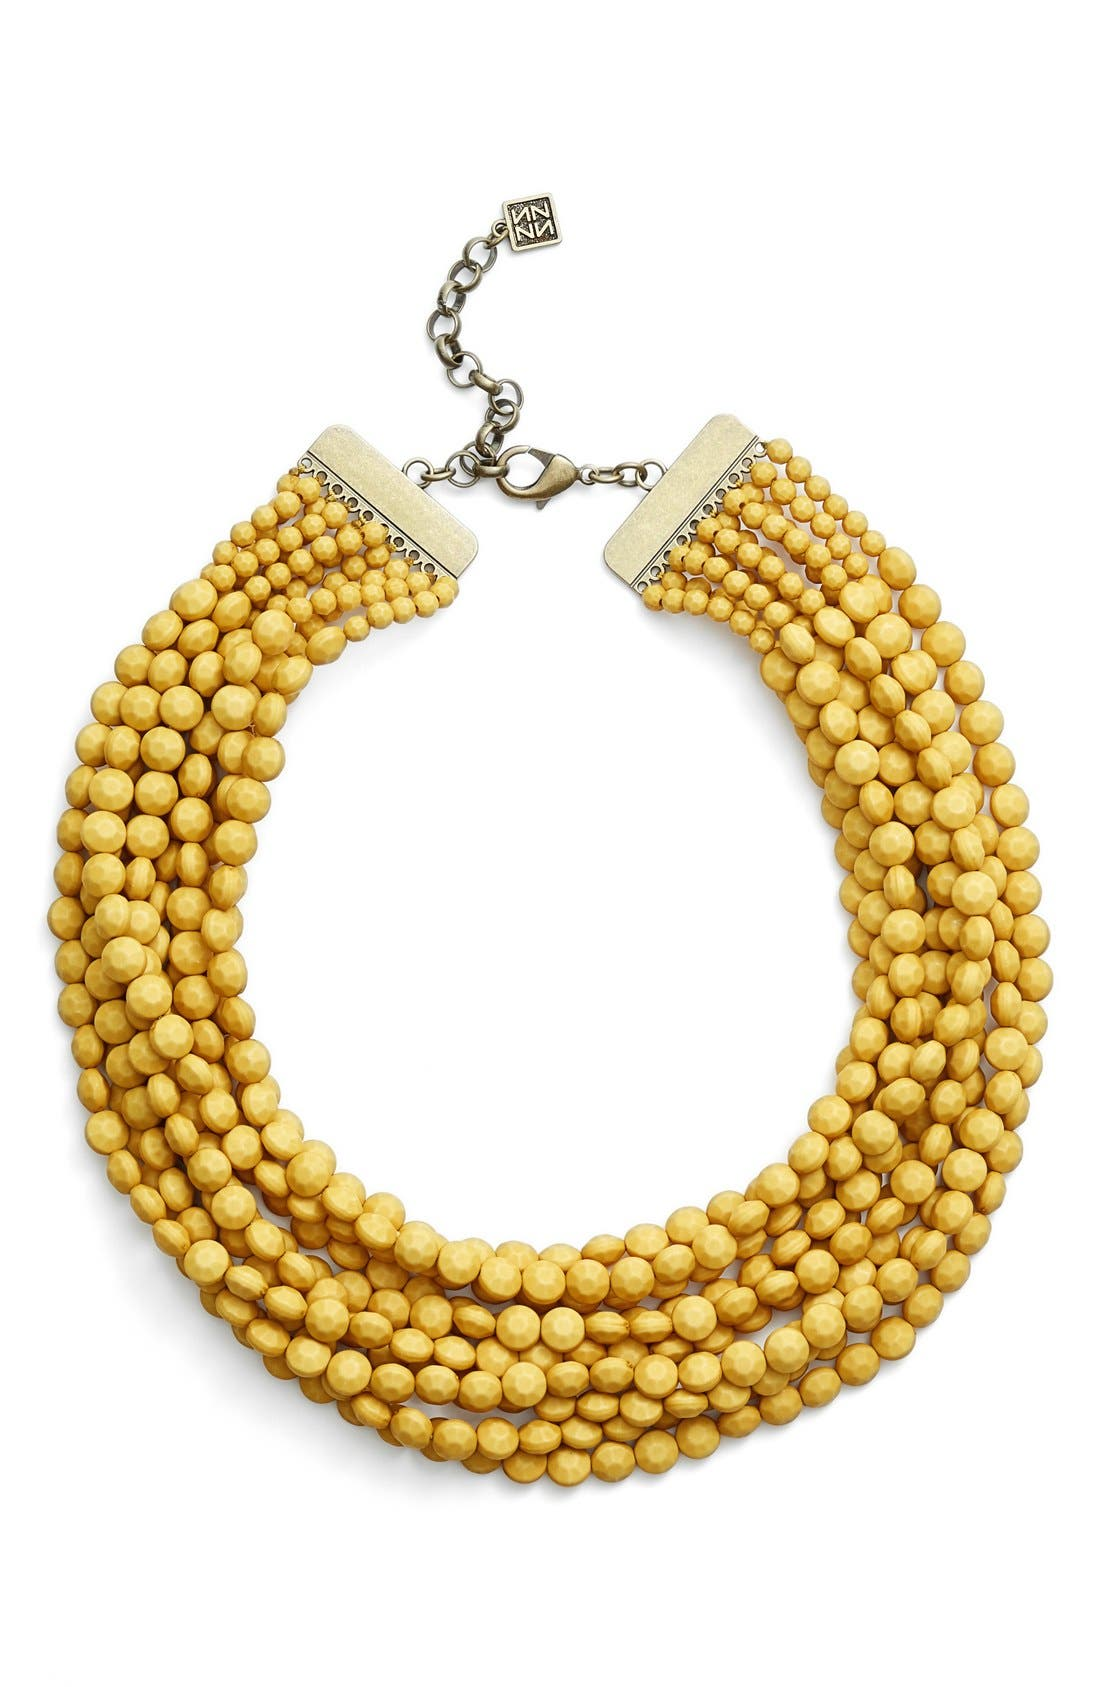 Main Image - ZENZII Beaded Multistrand Collar Necklace